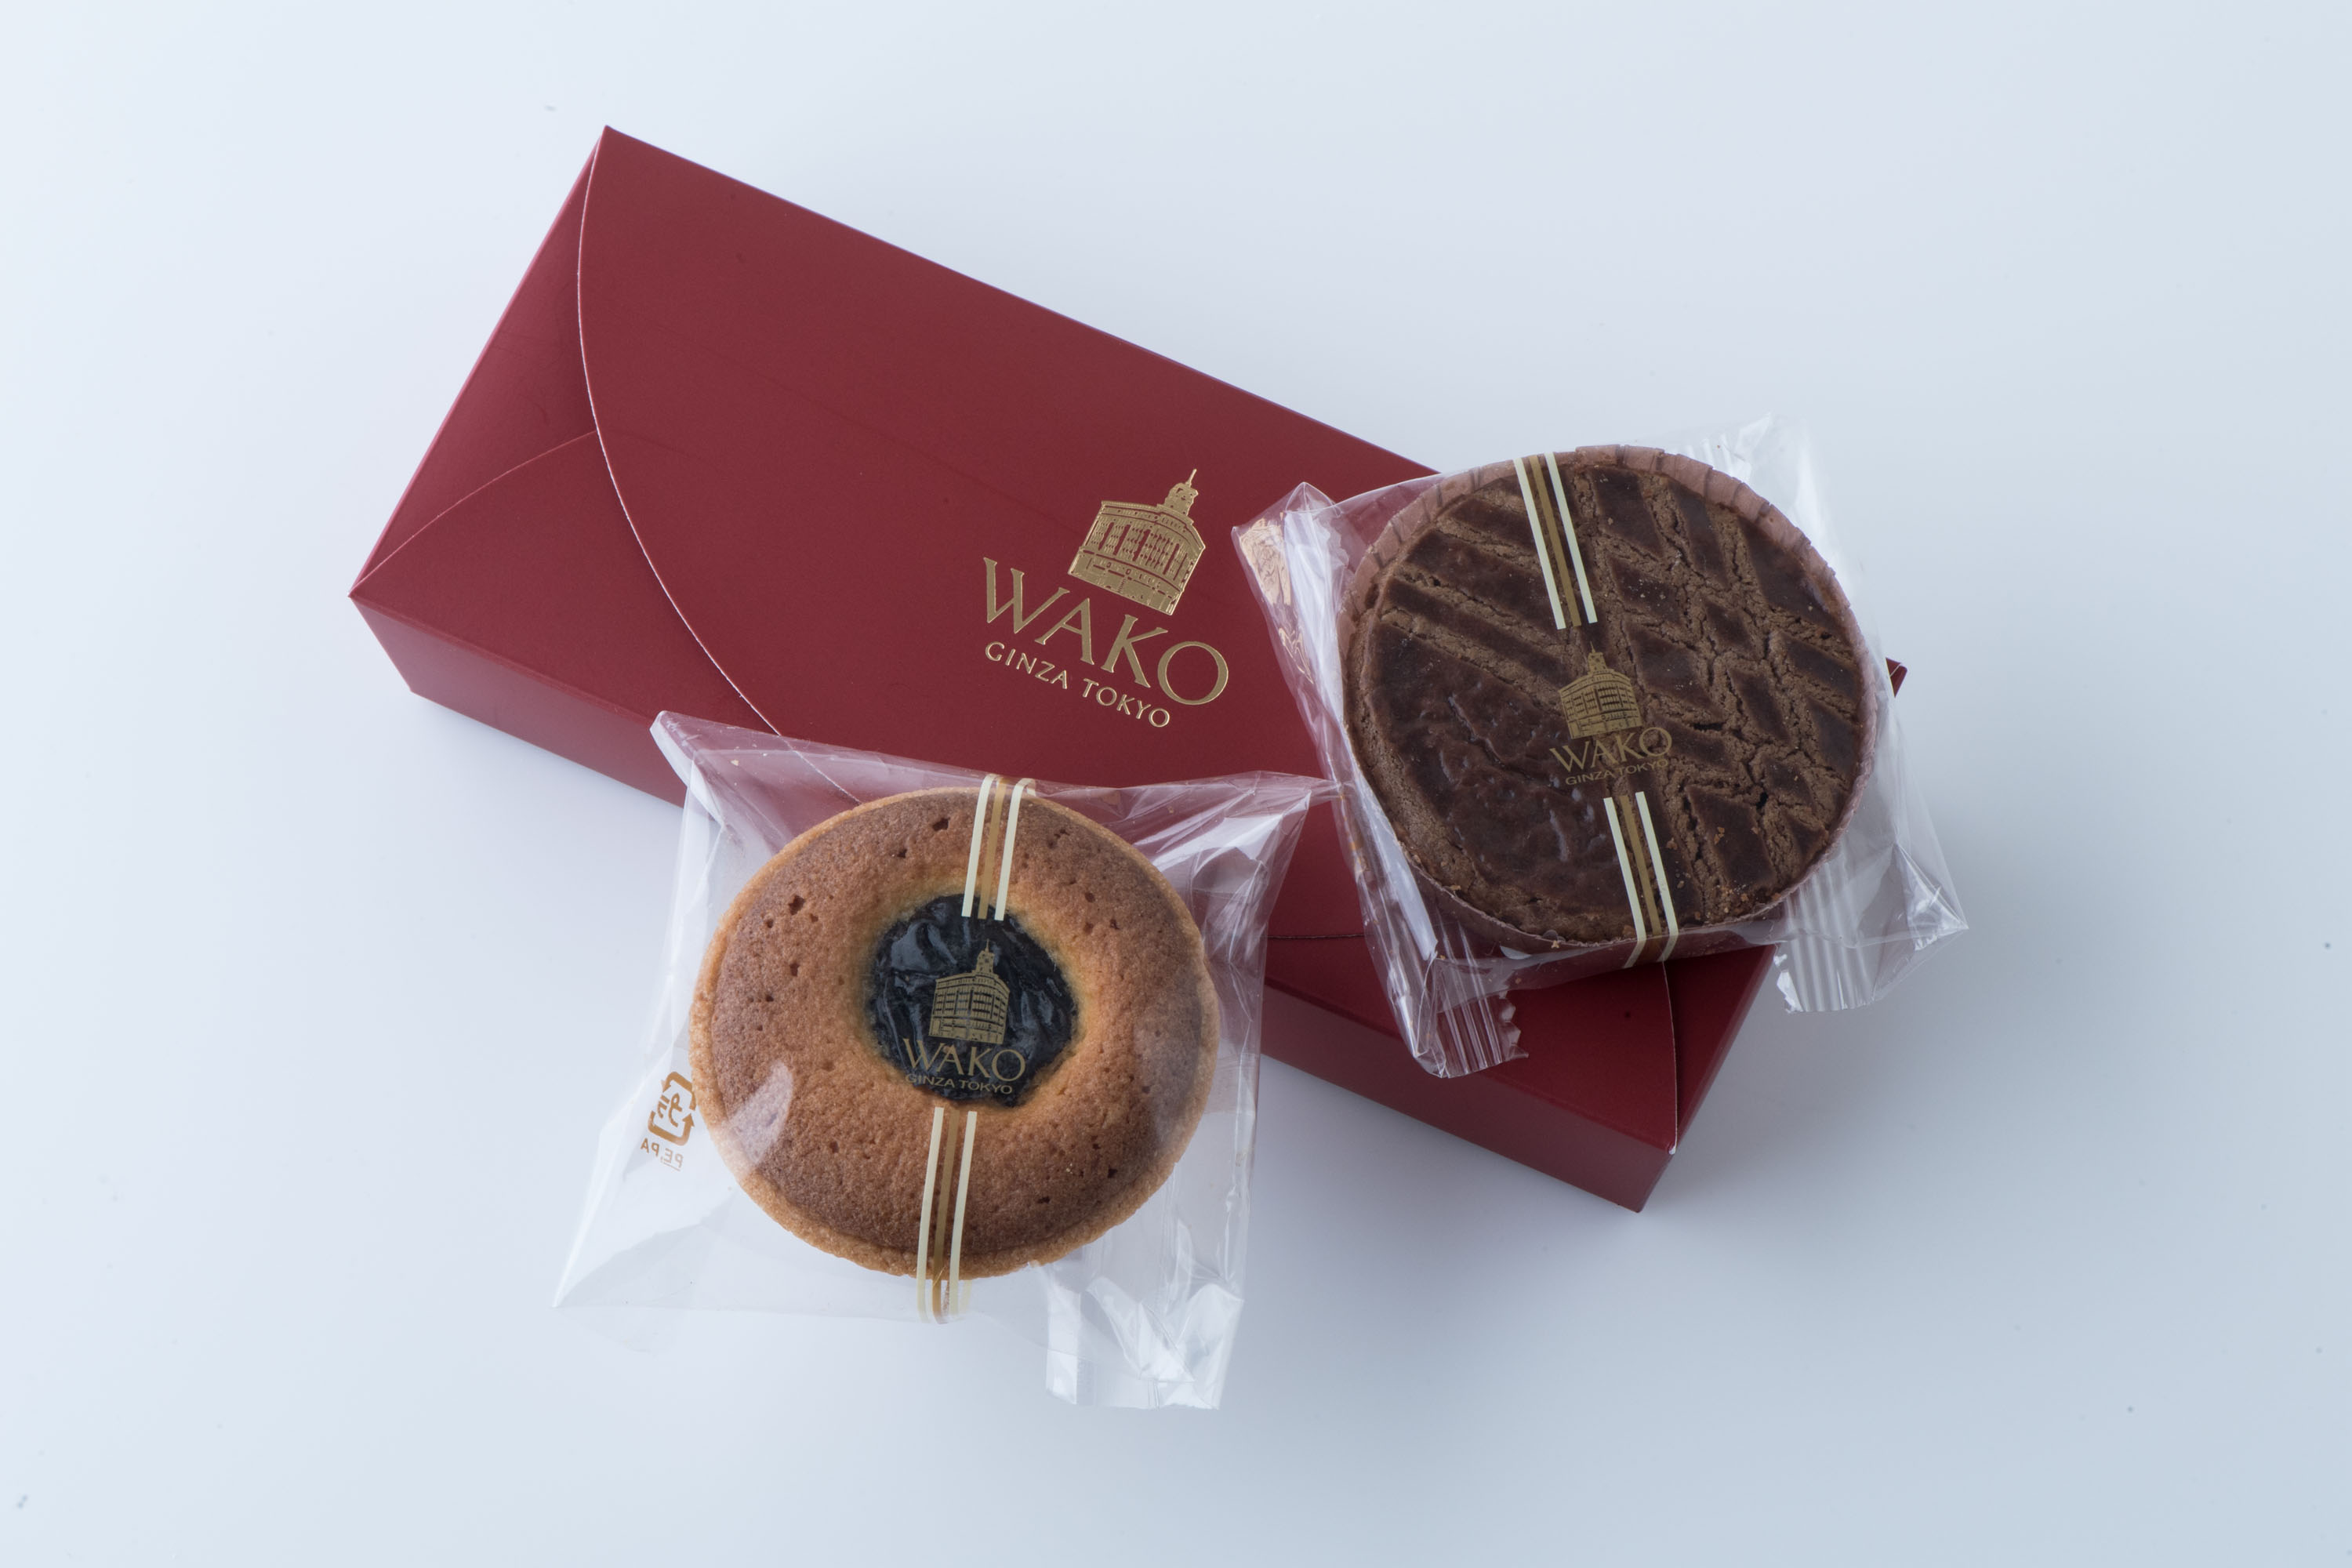 """Information for baked confectioneries """"gateau Brest"""" of AUTUMN IN WAKO reproduction present"""